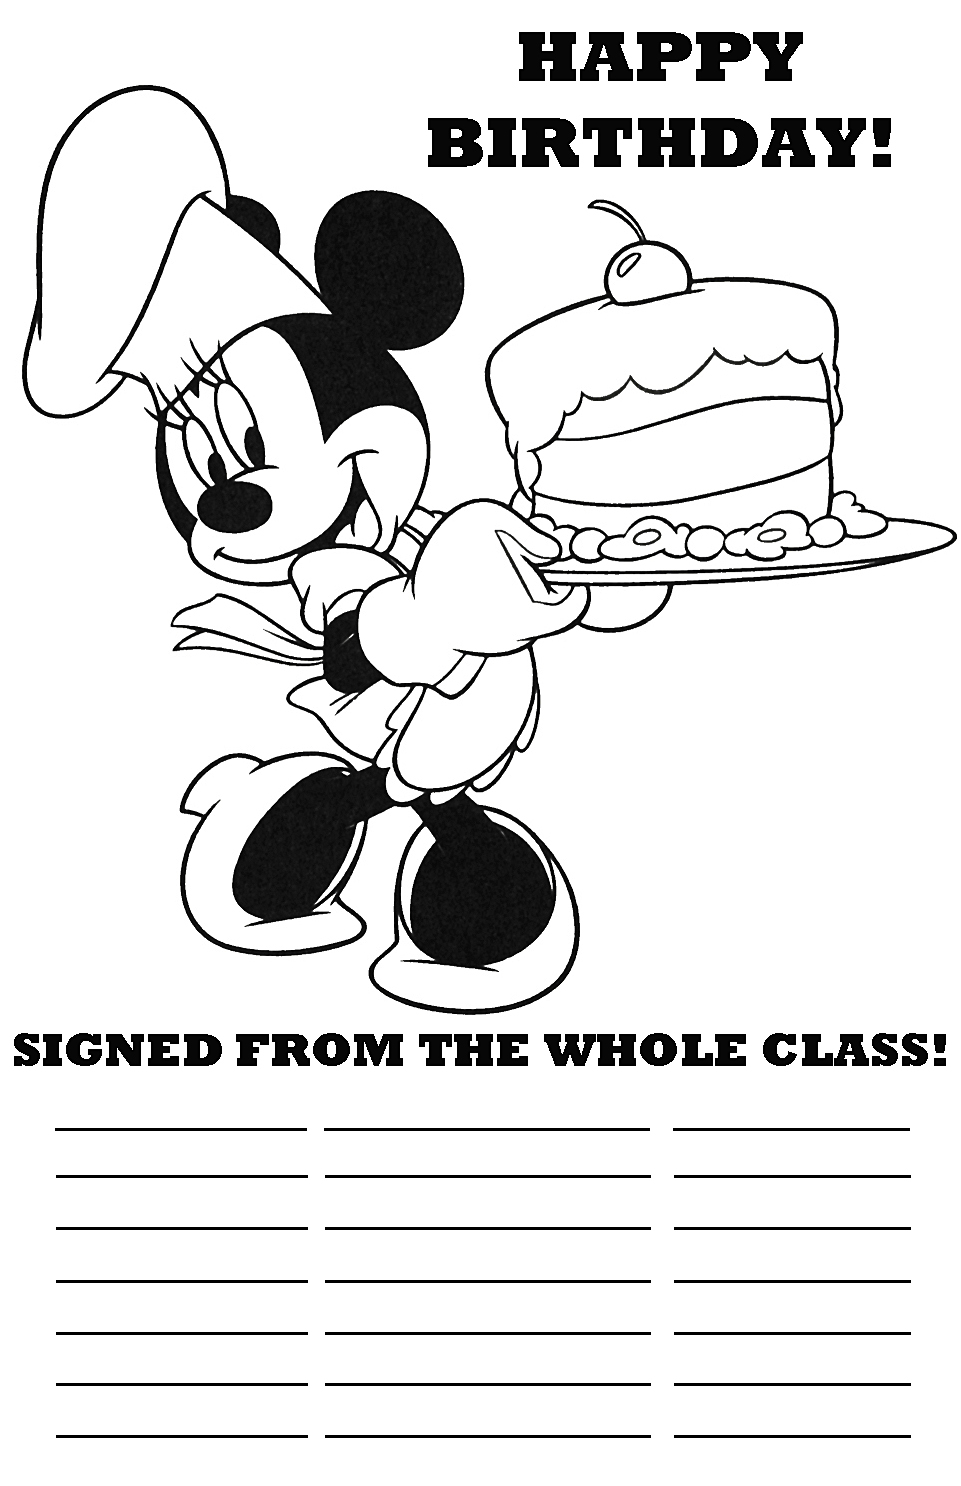 happy birthday coloring pages disney ; DISNEY+HAPPY+BIRTHDAY+TEACHER+CLASS